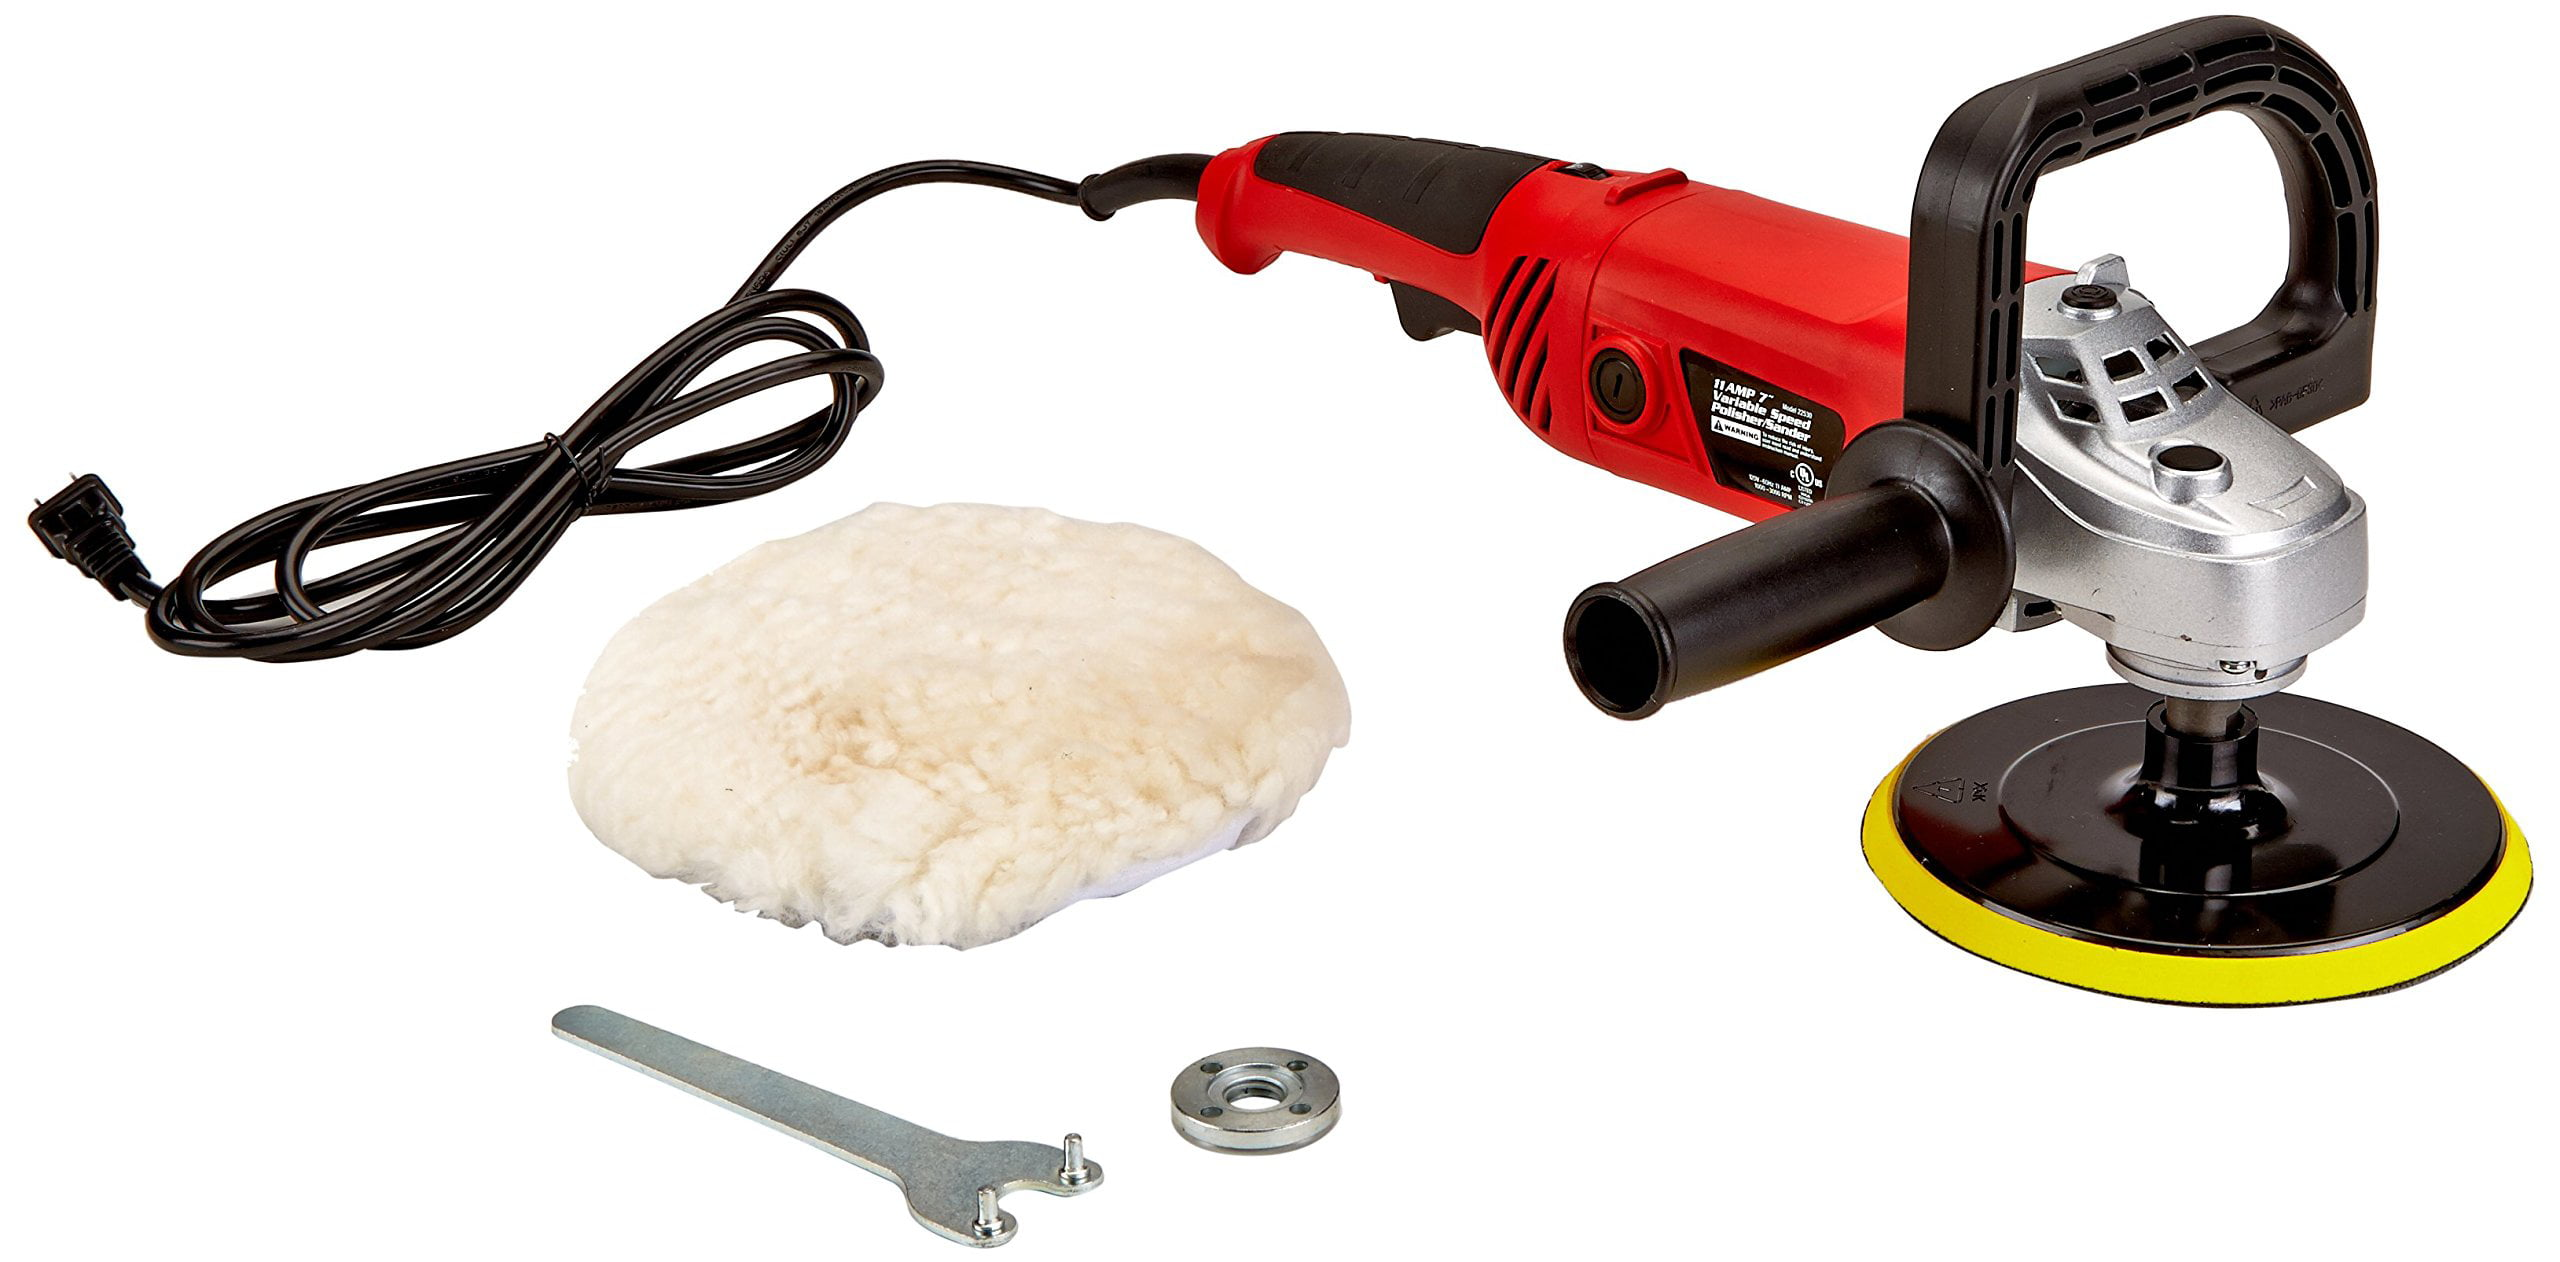 "Titan 22530 7"" Polisher Sander 11 Amp by Titan"